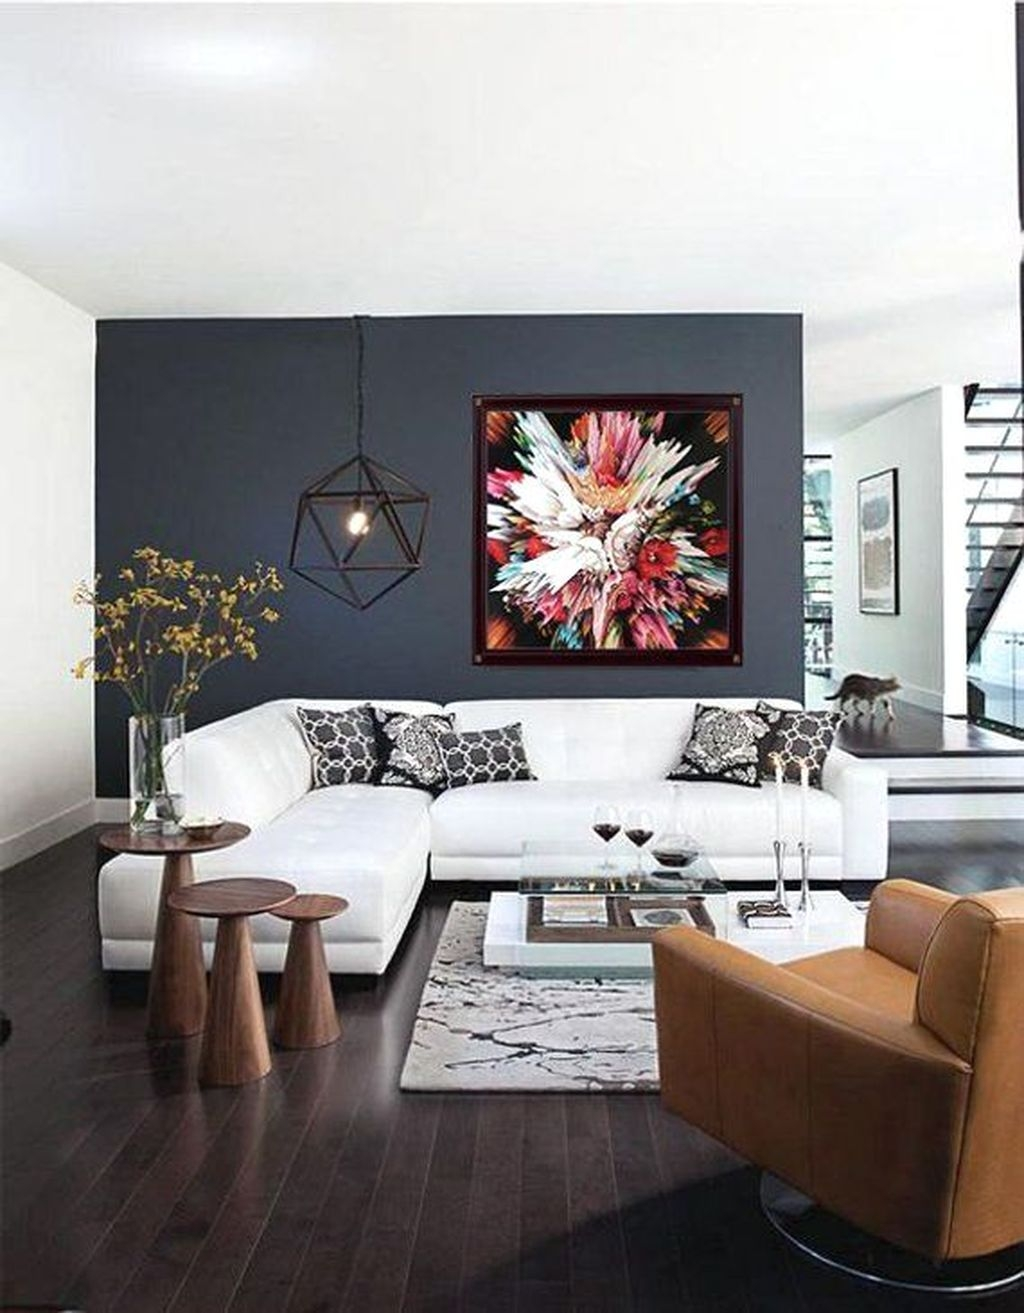 Cozy Interior Design Ideas For Living Room That Look Relax 52